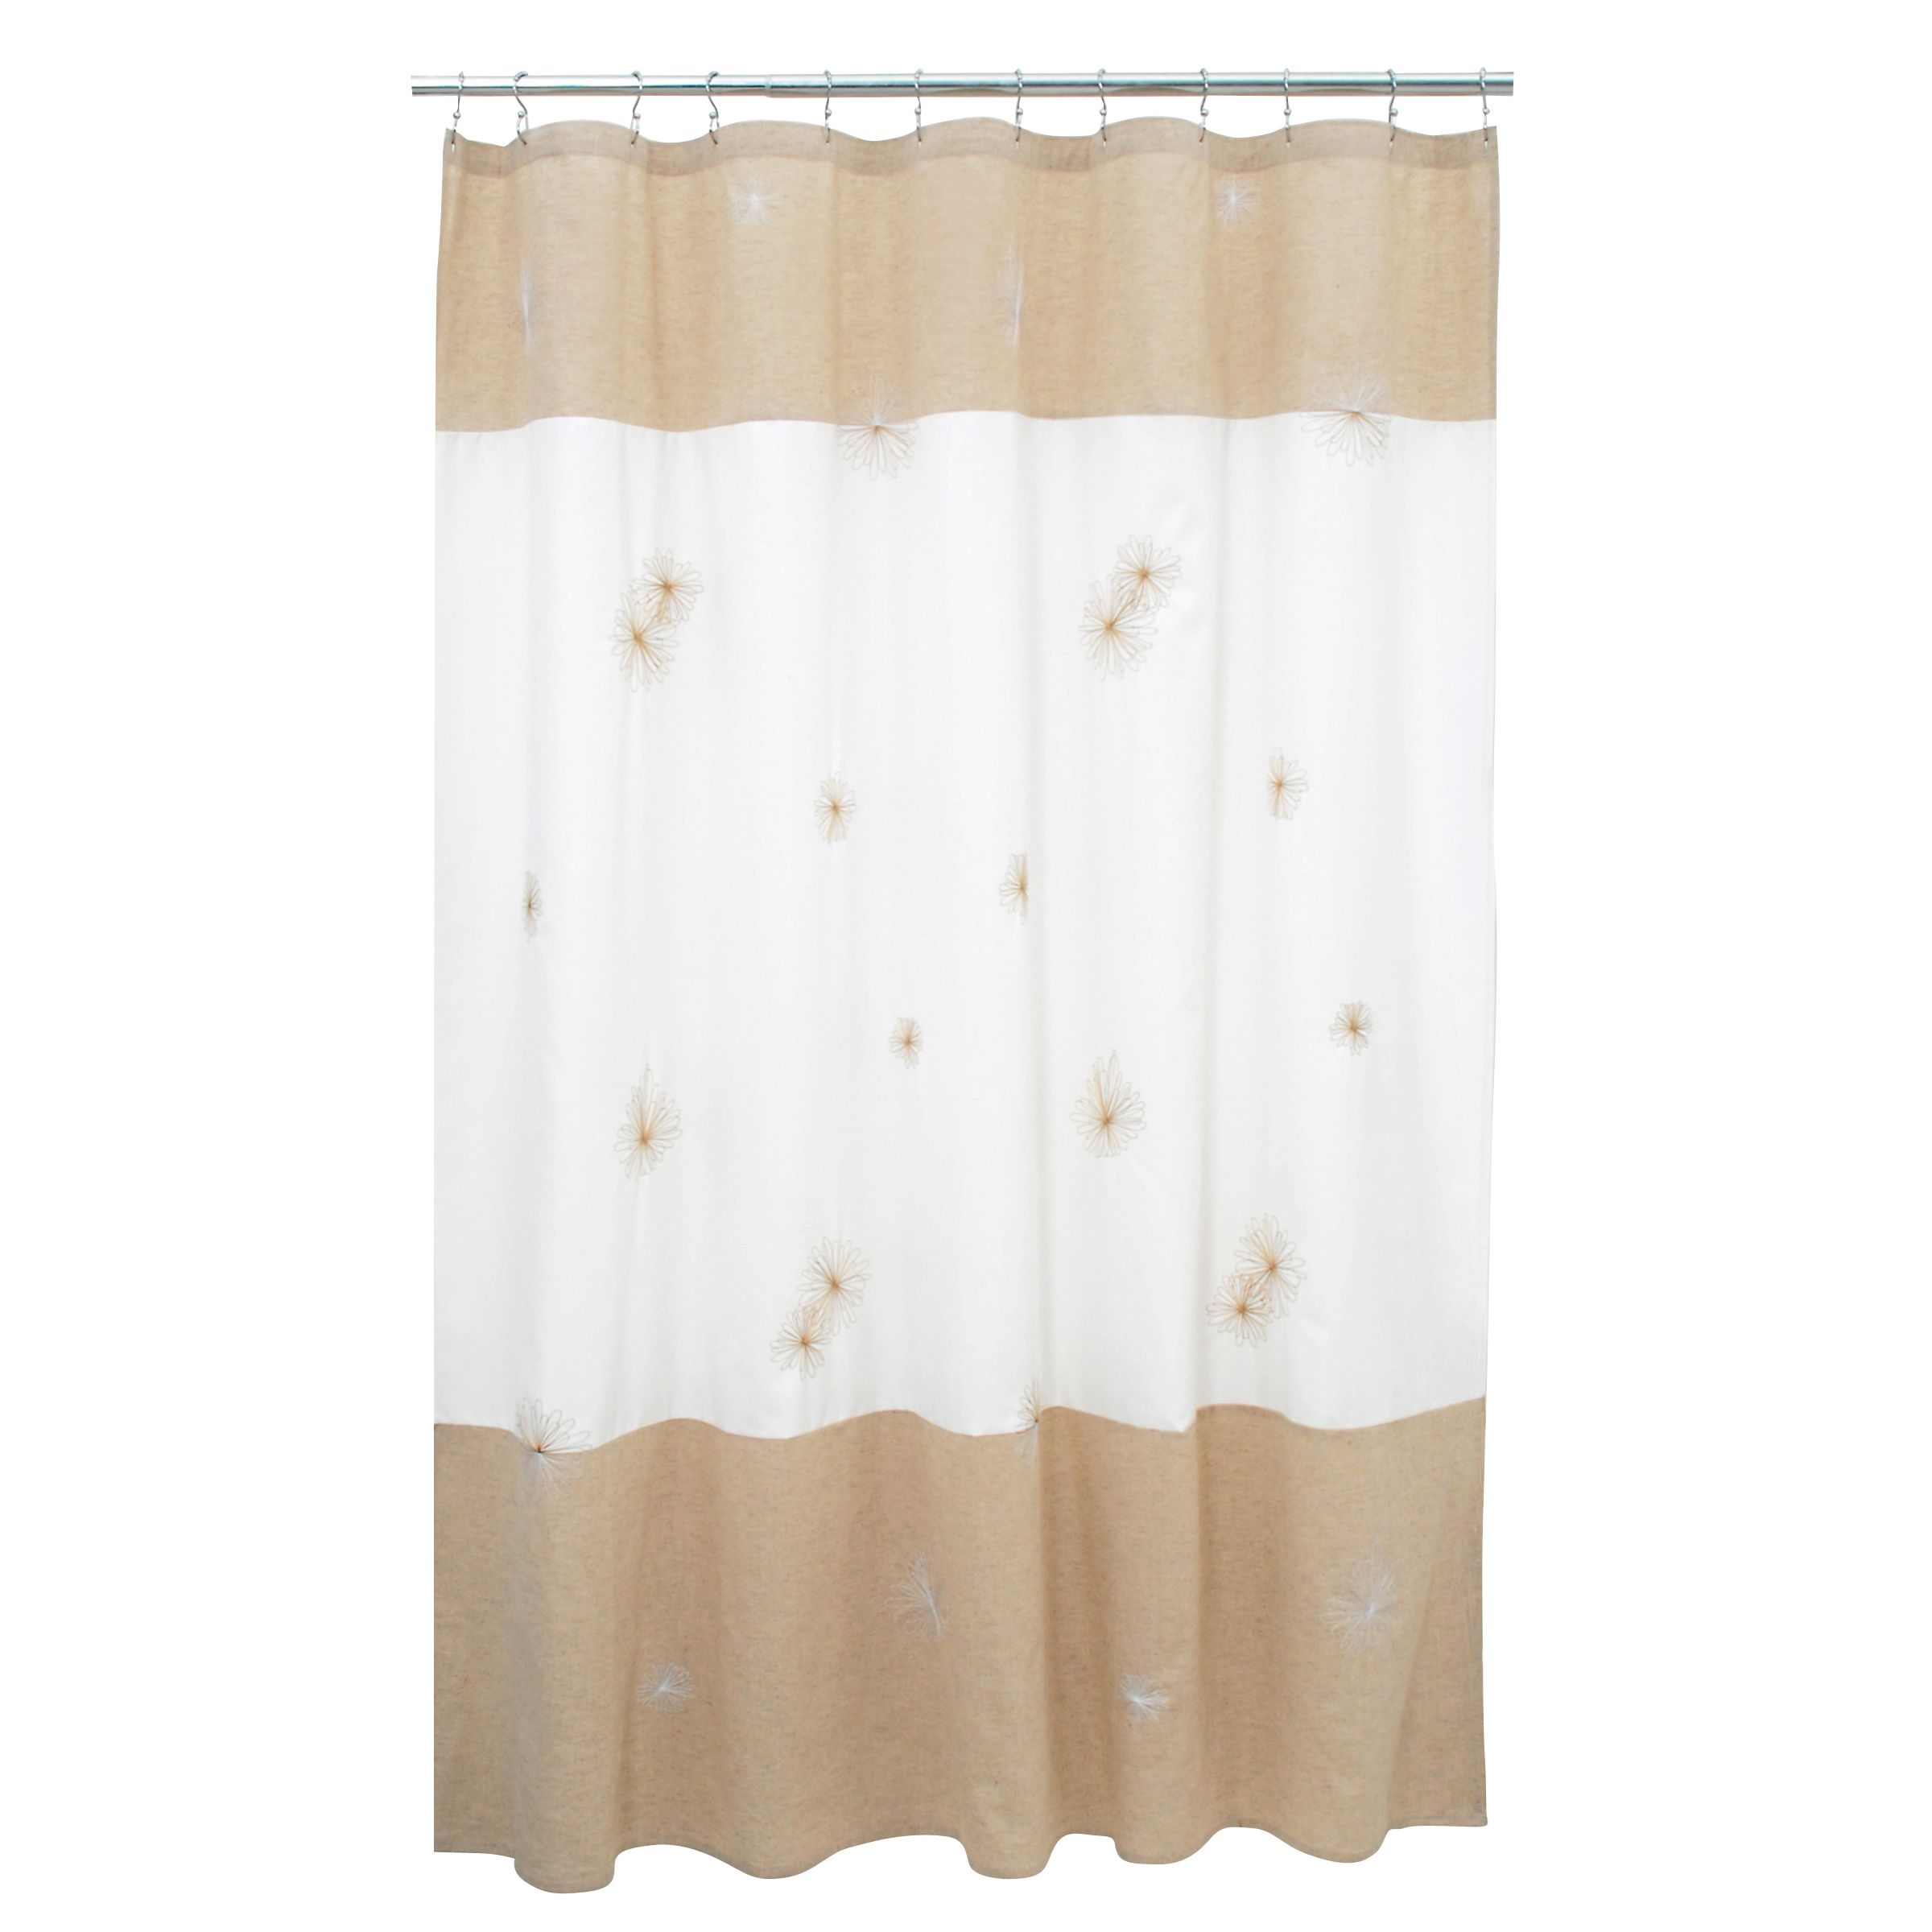 Shower Curtain Spiro Beige Fabric